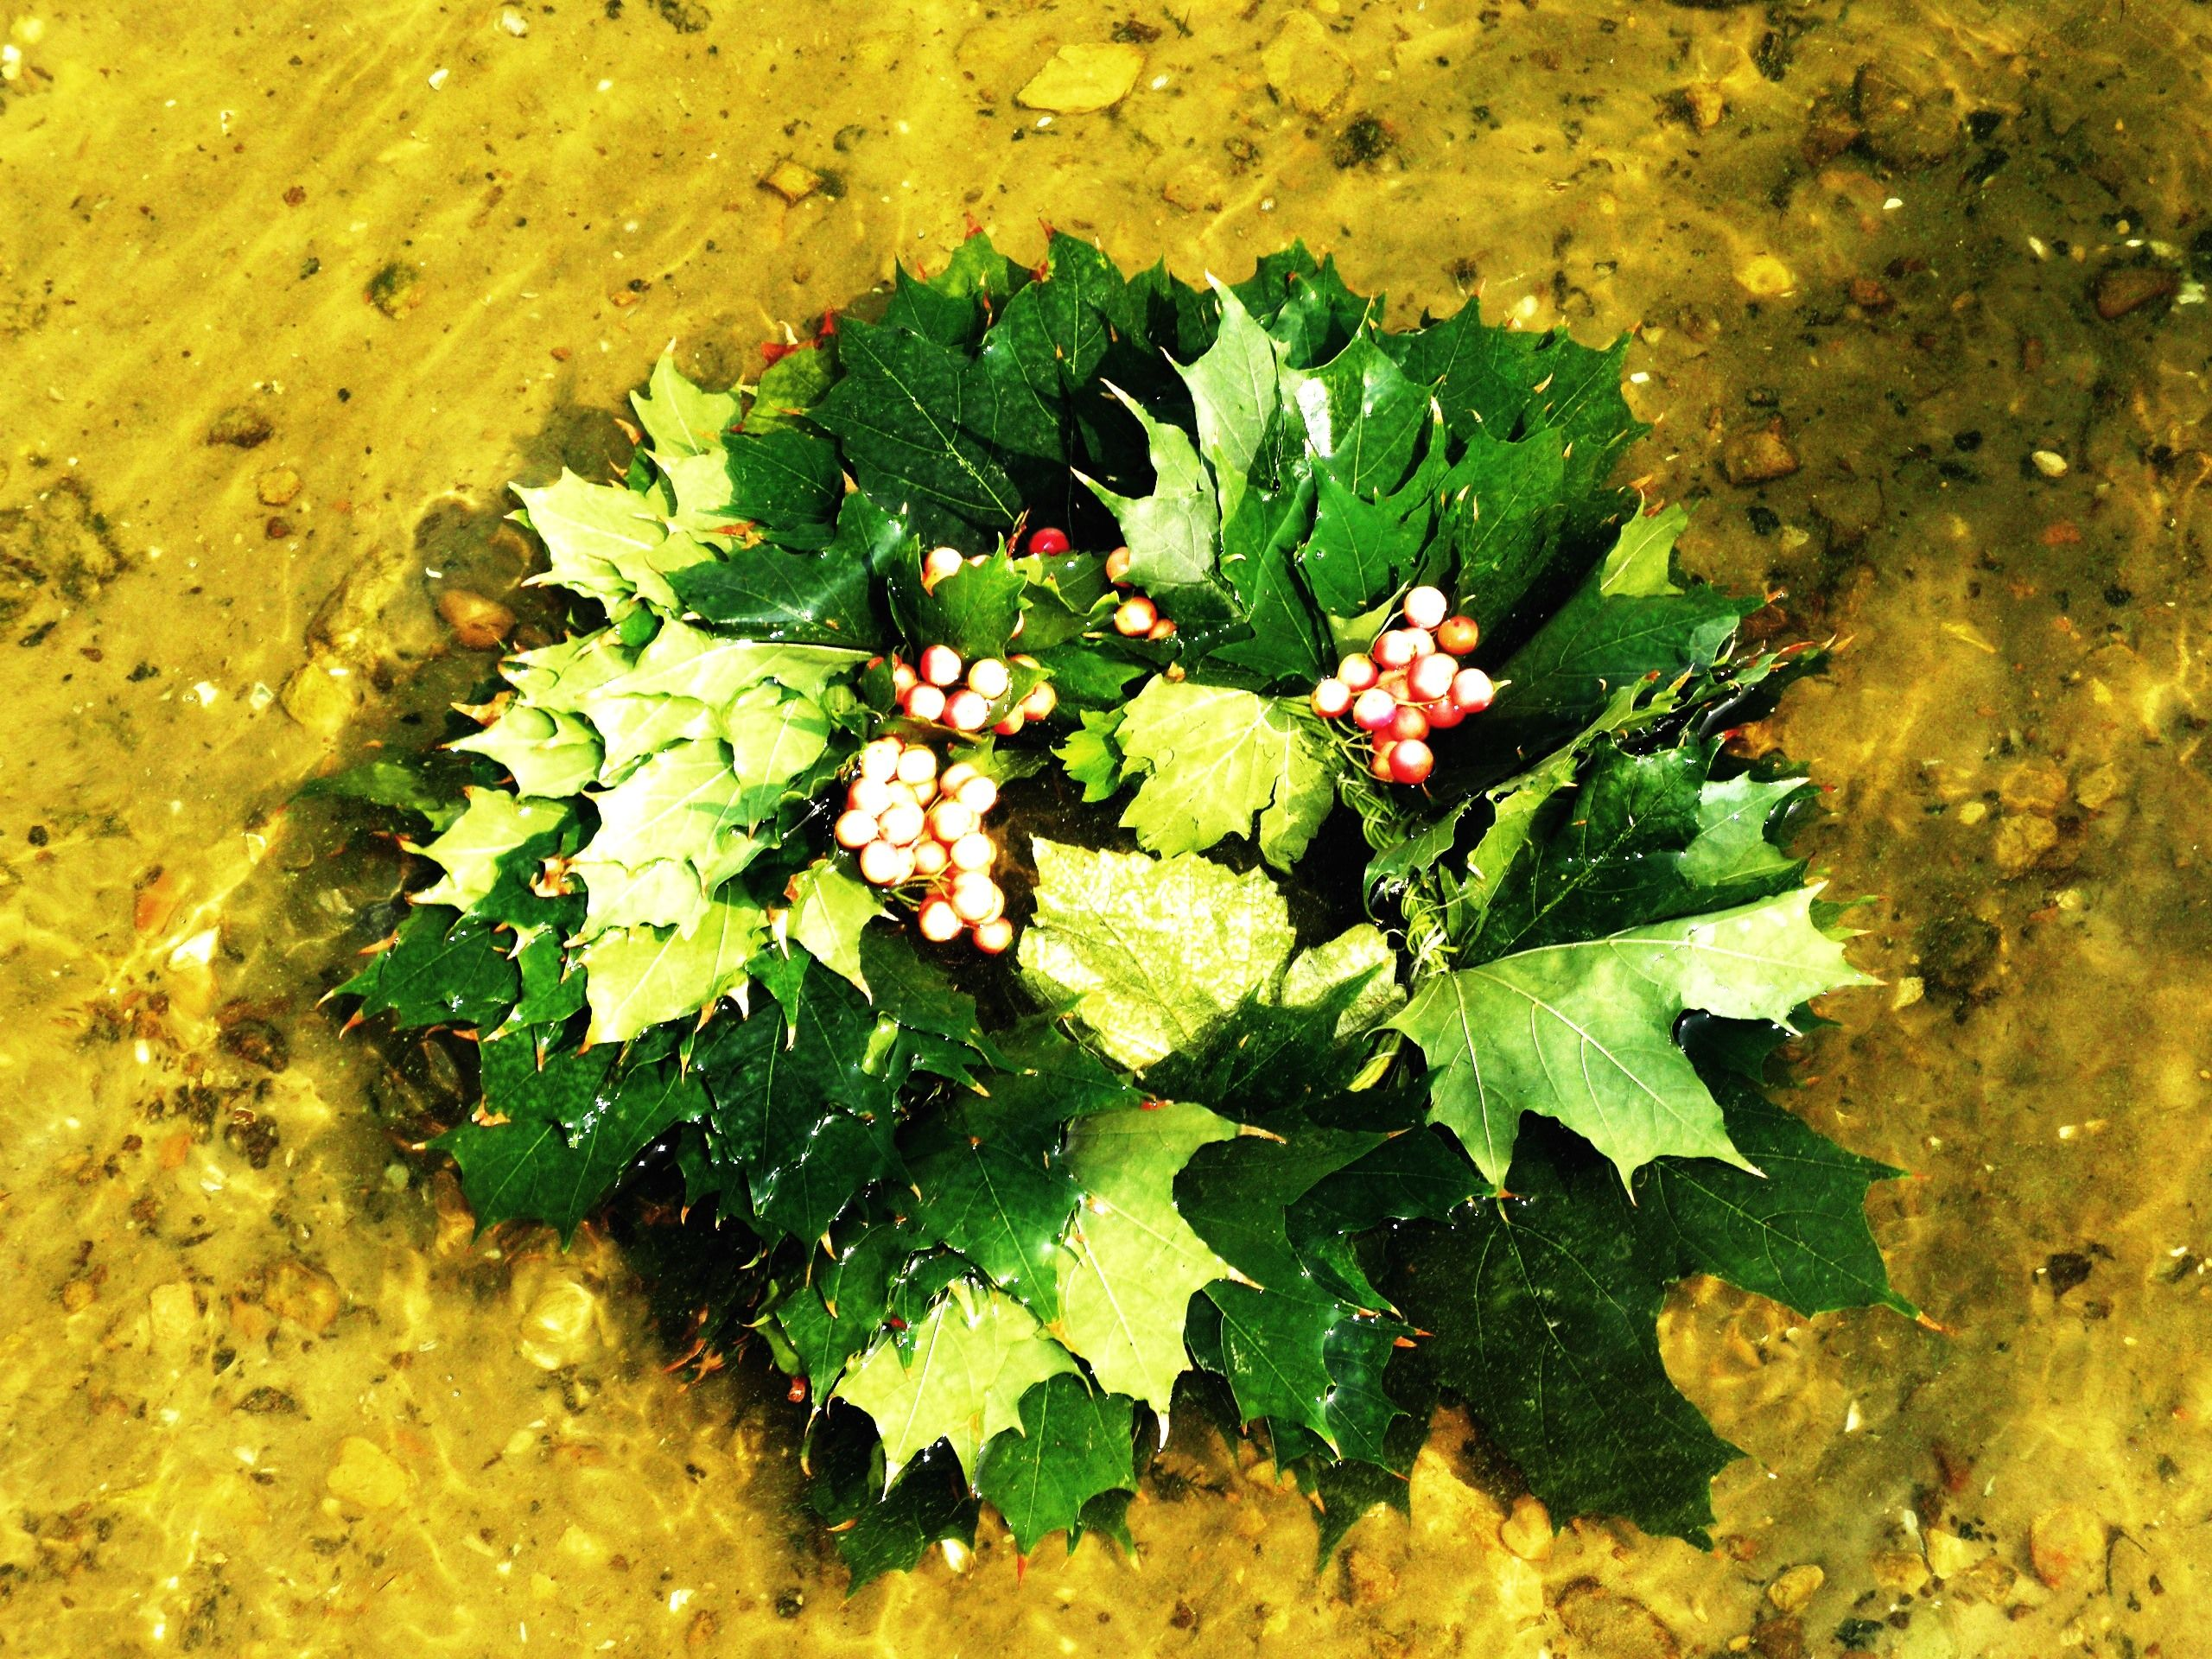 Leaf wreath on the water surface